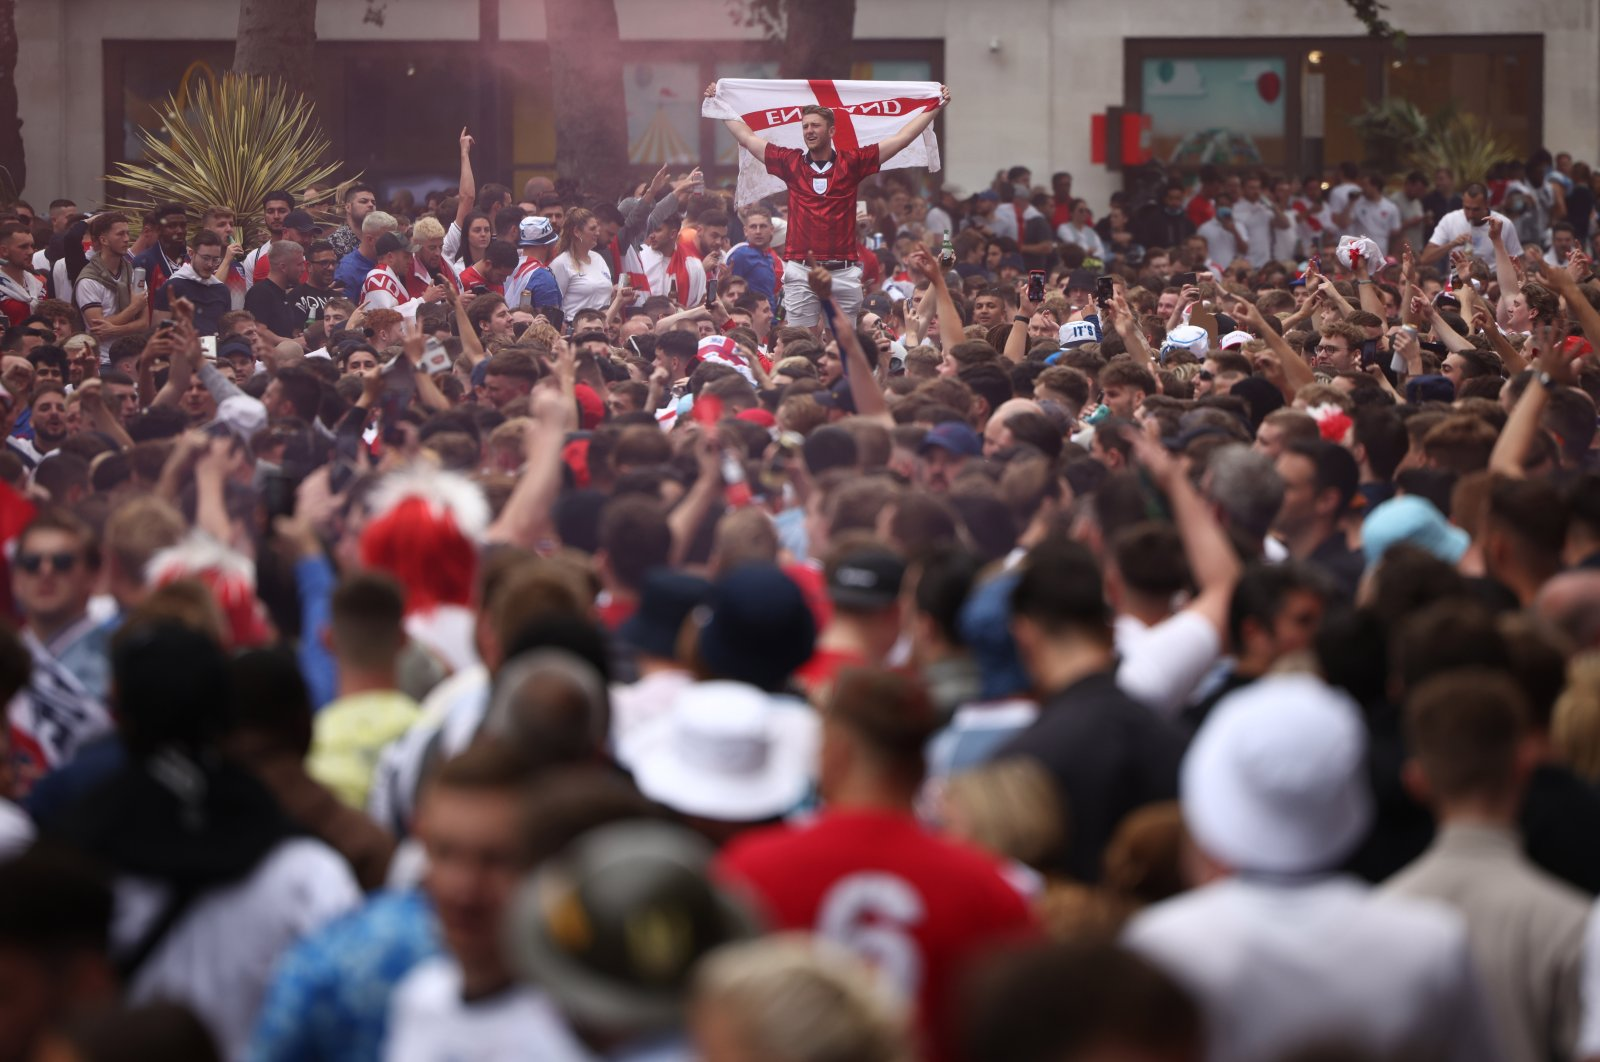 England fans gather at Leicester Square ahead of the Euro 2020 final between England and Italy, London, England, July 11, 2021. (Reuters Photo)